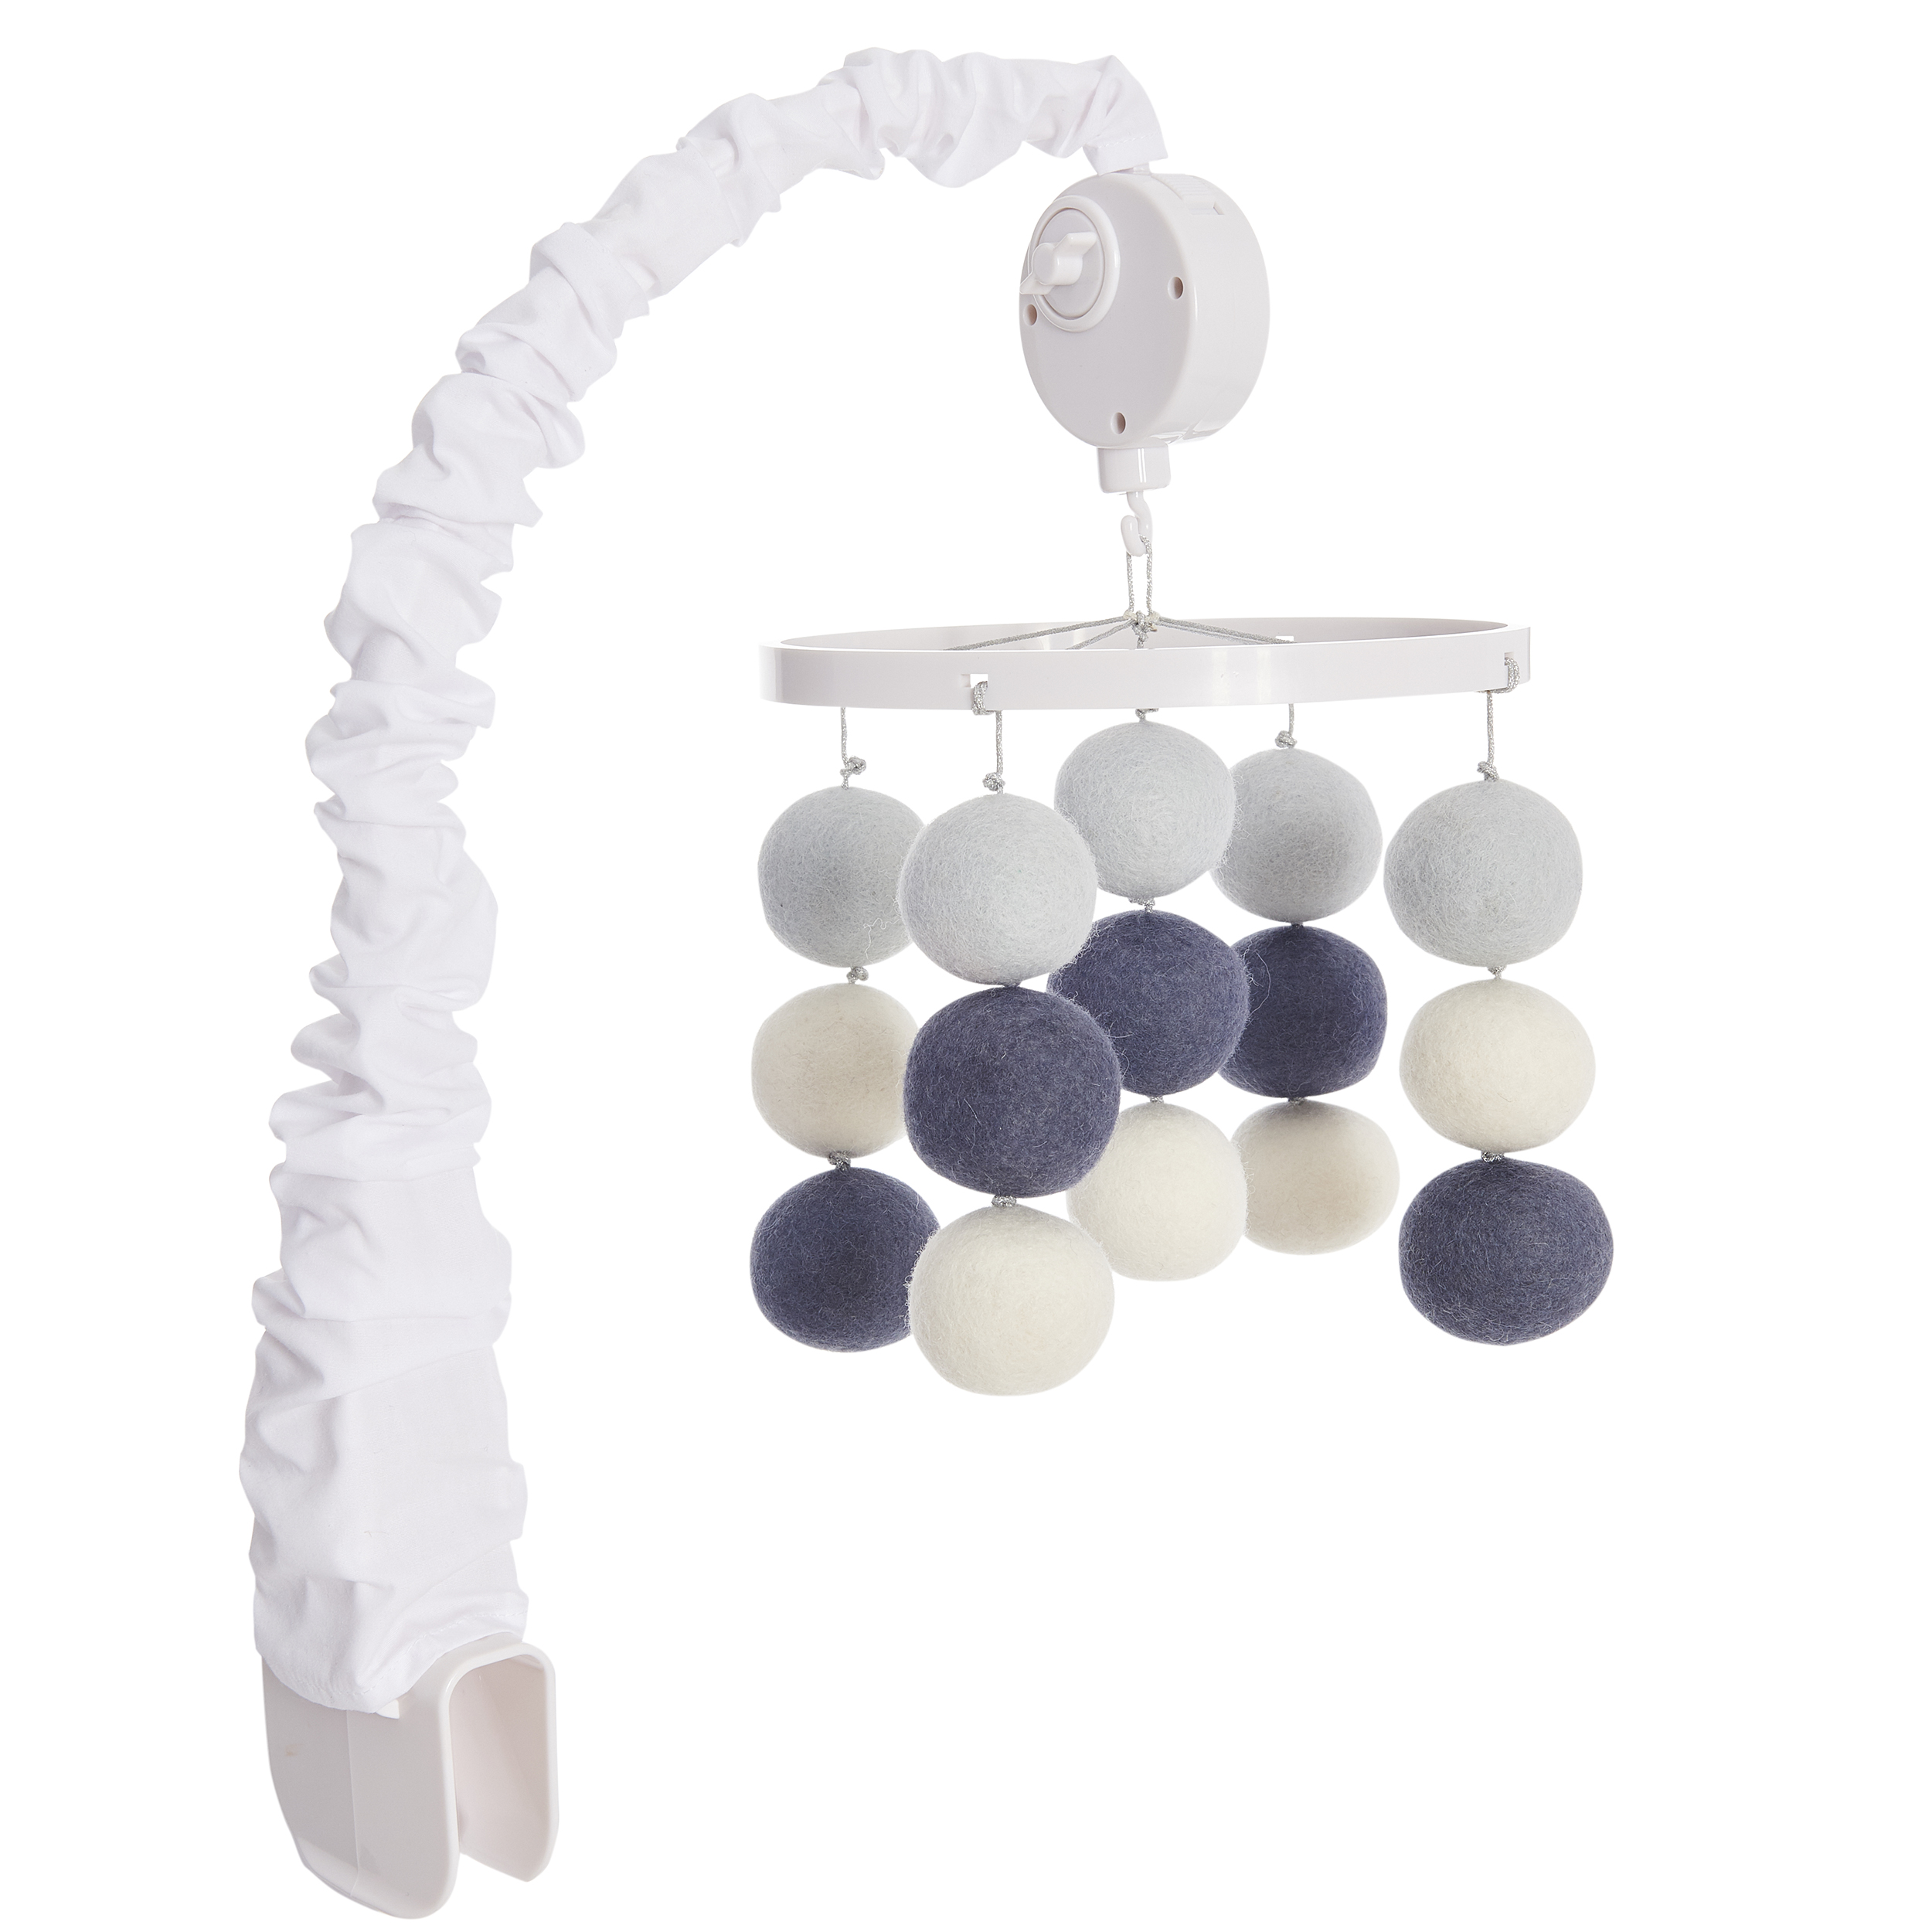 HALO Bassinest Mobile with music Gray and white balls by HALO